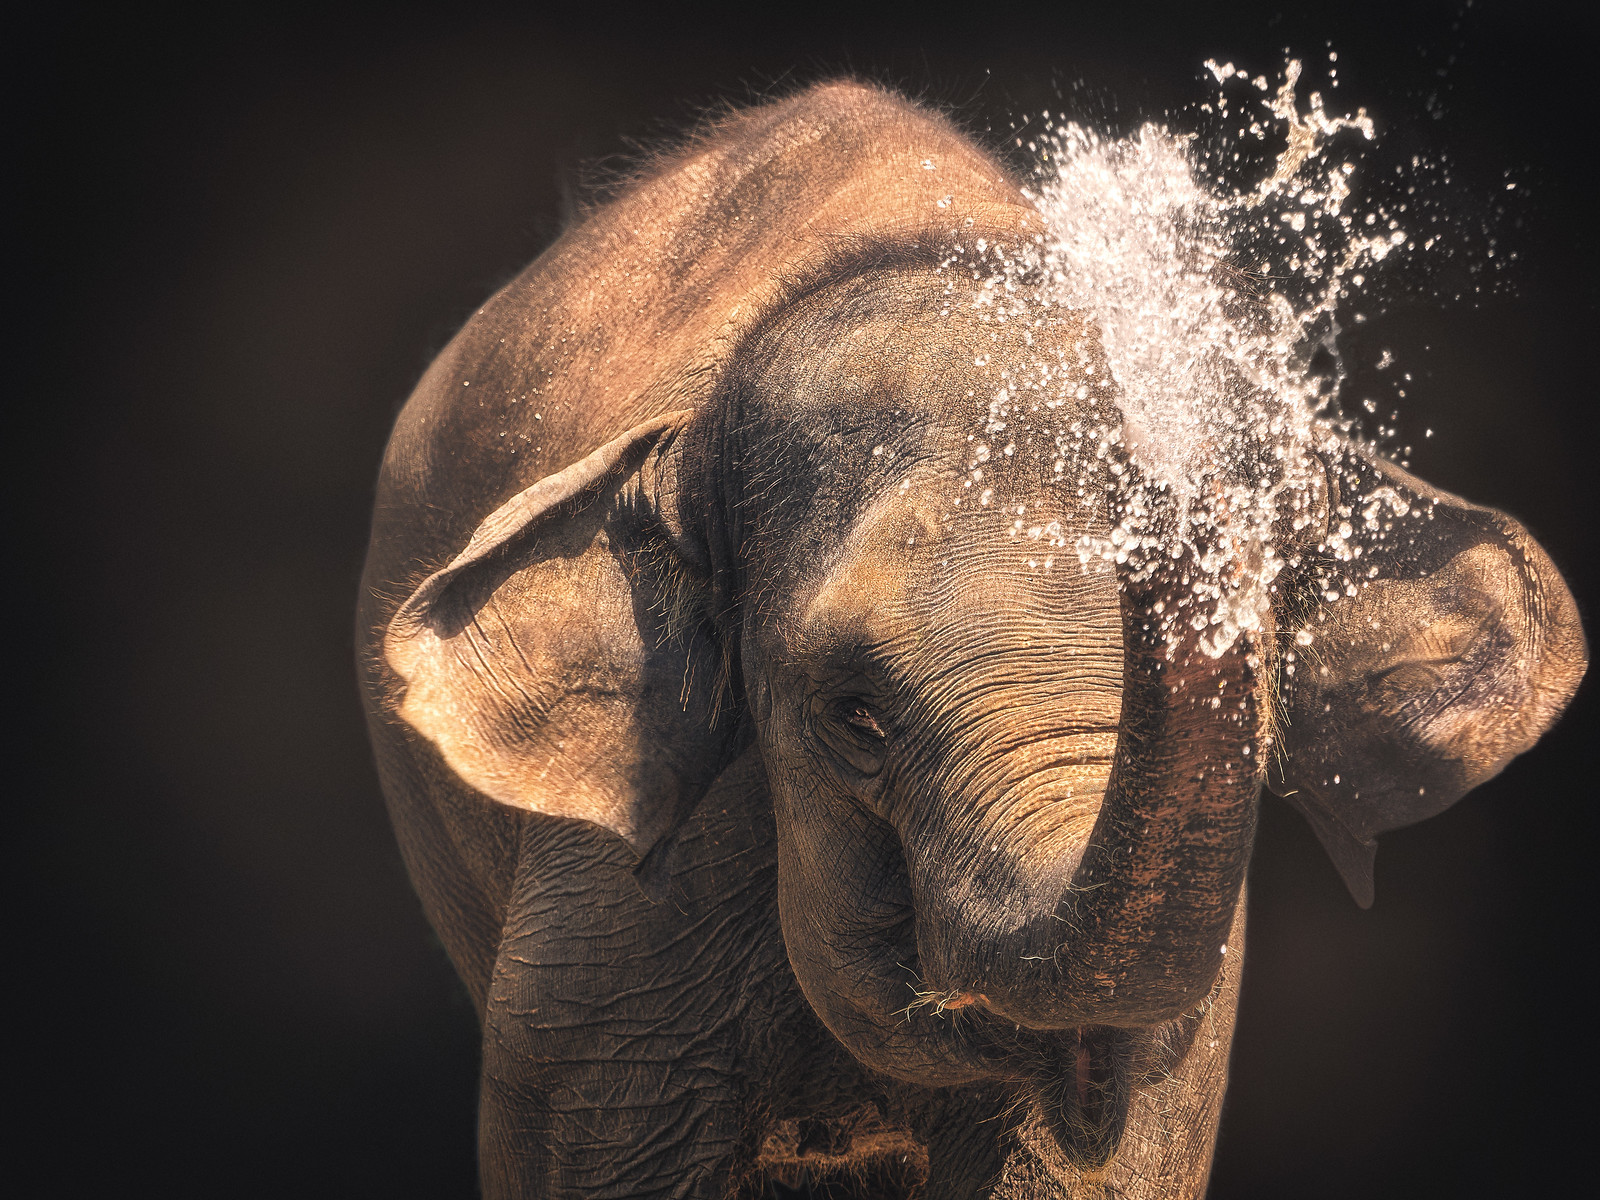 Asian Elephant spraying water